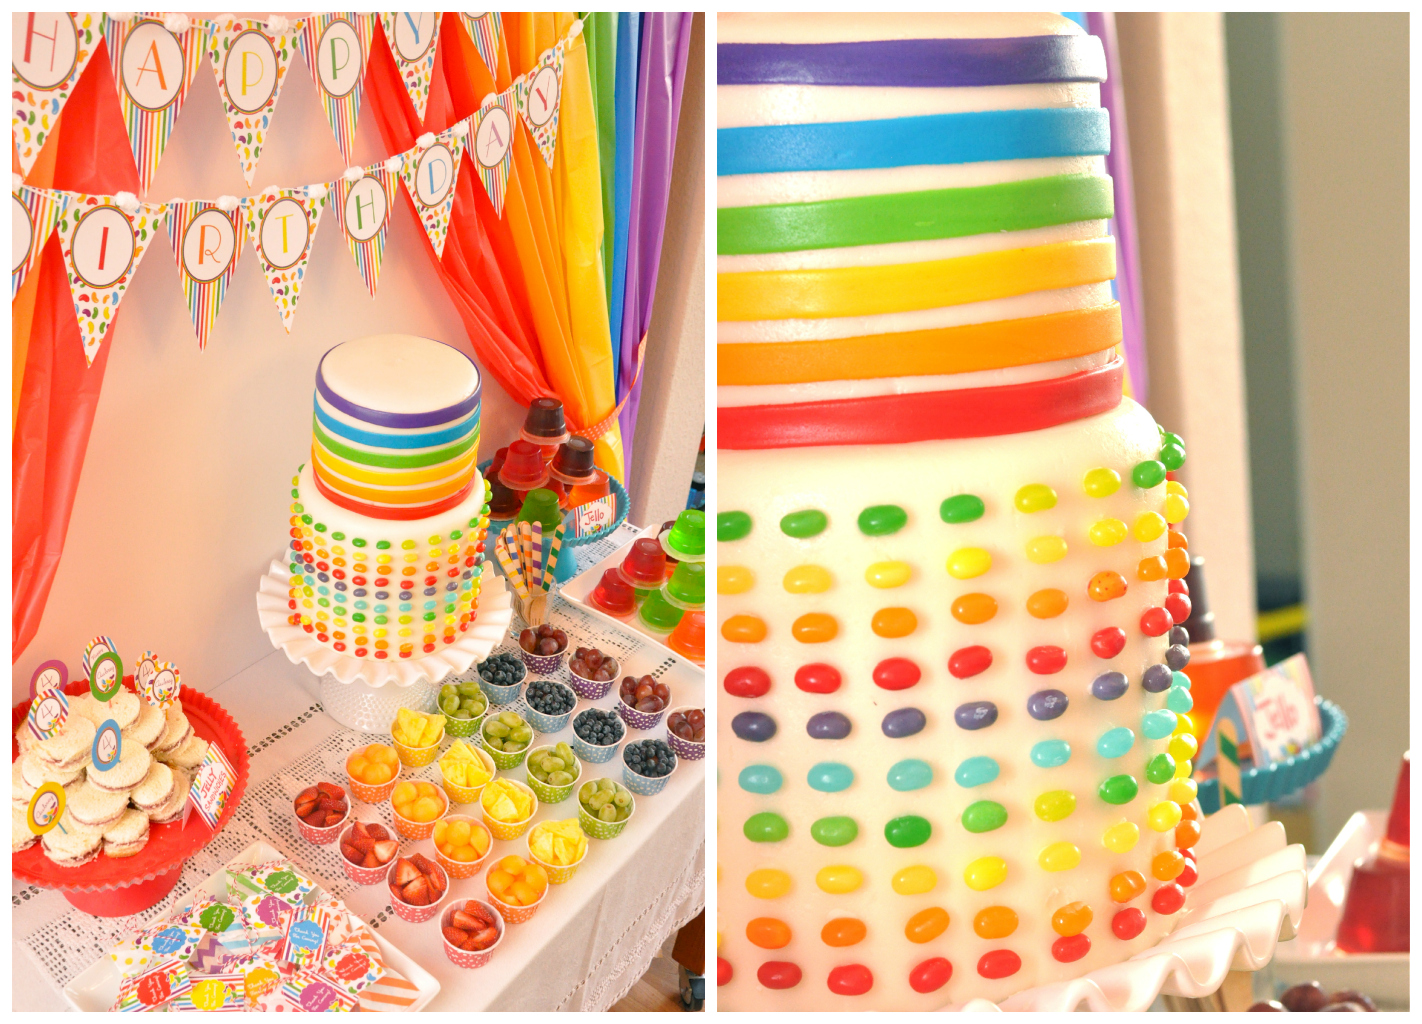 Jelly Bean Birthday Party Ideas and Candy Bar Desserts table